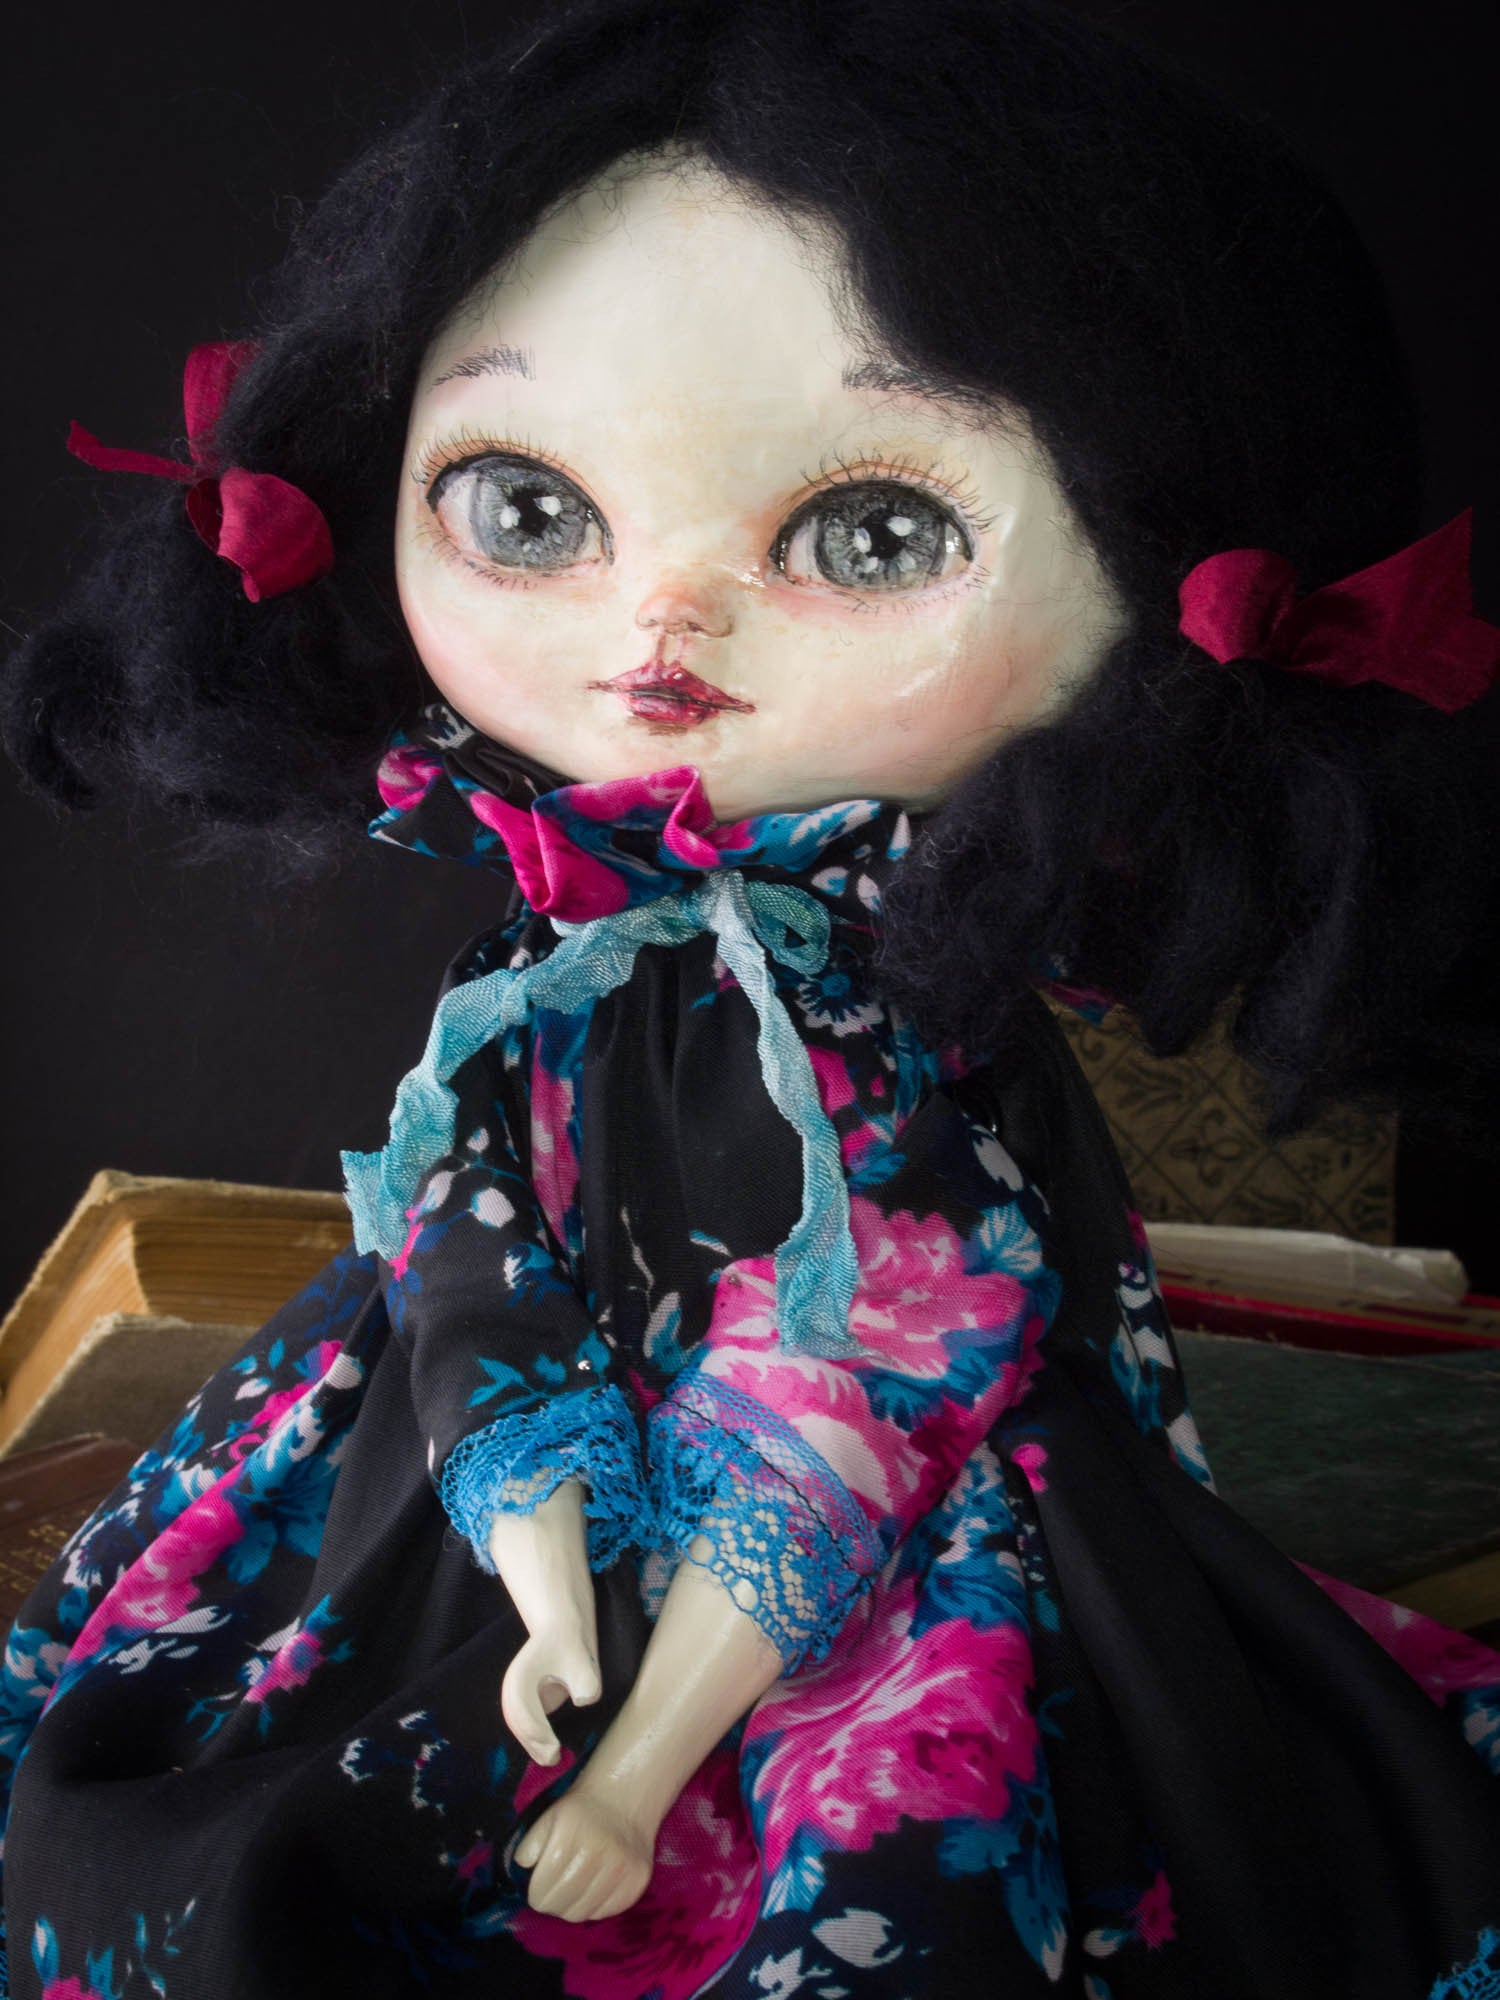 Pauline, a beautiful handmade art doll created by Danita Art with mixed media techniques, fabric and paper clay to create a sweet face with amazingly expressive blue eyes.